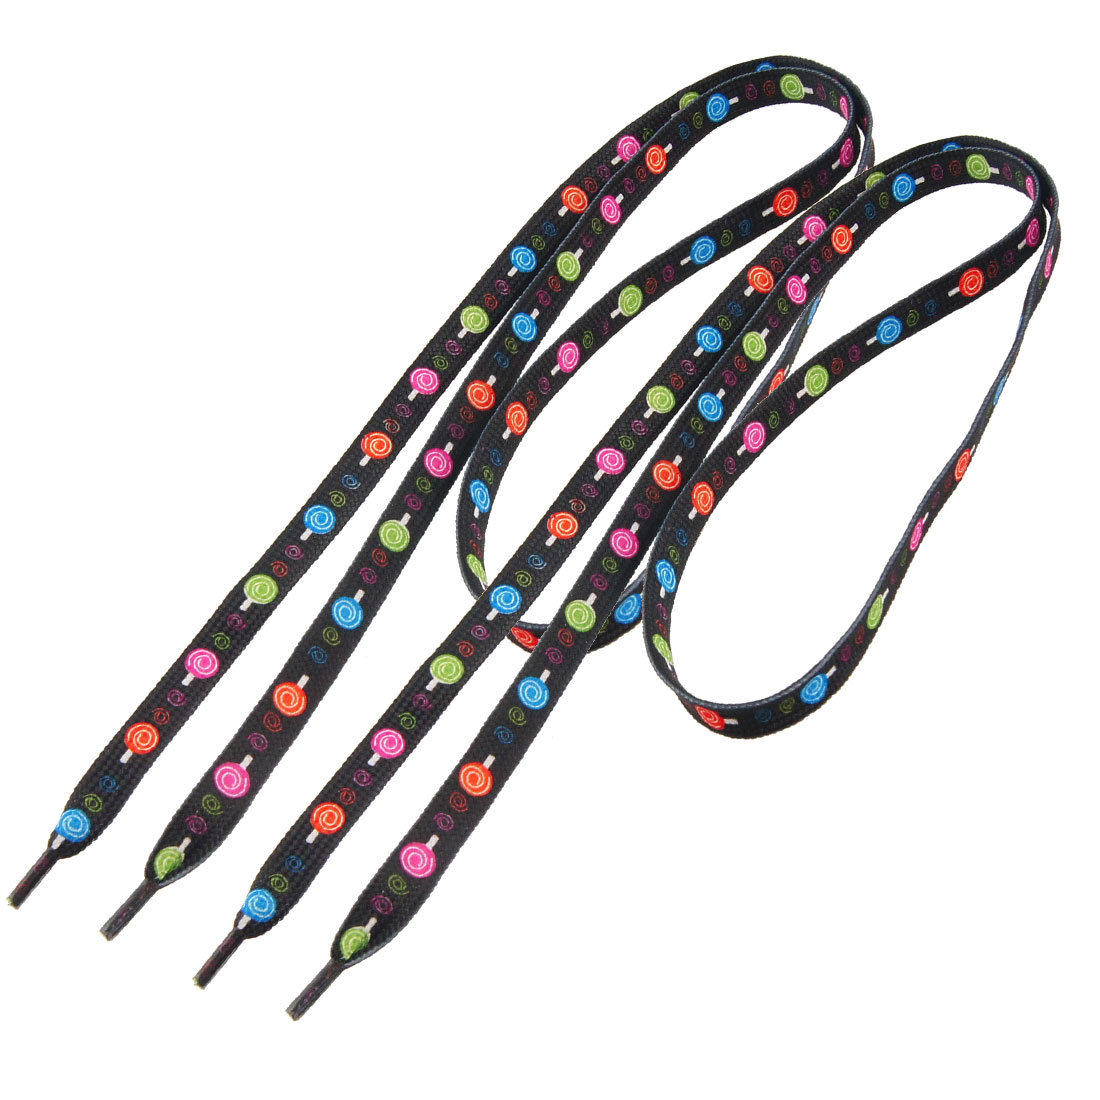 Black Lollipop Prints Flat Shoelaces 1 Pair for Sports Shoes